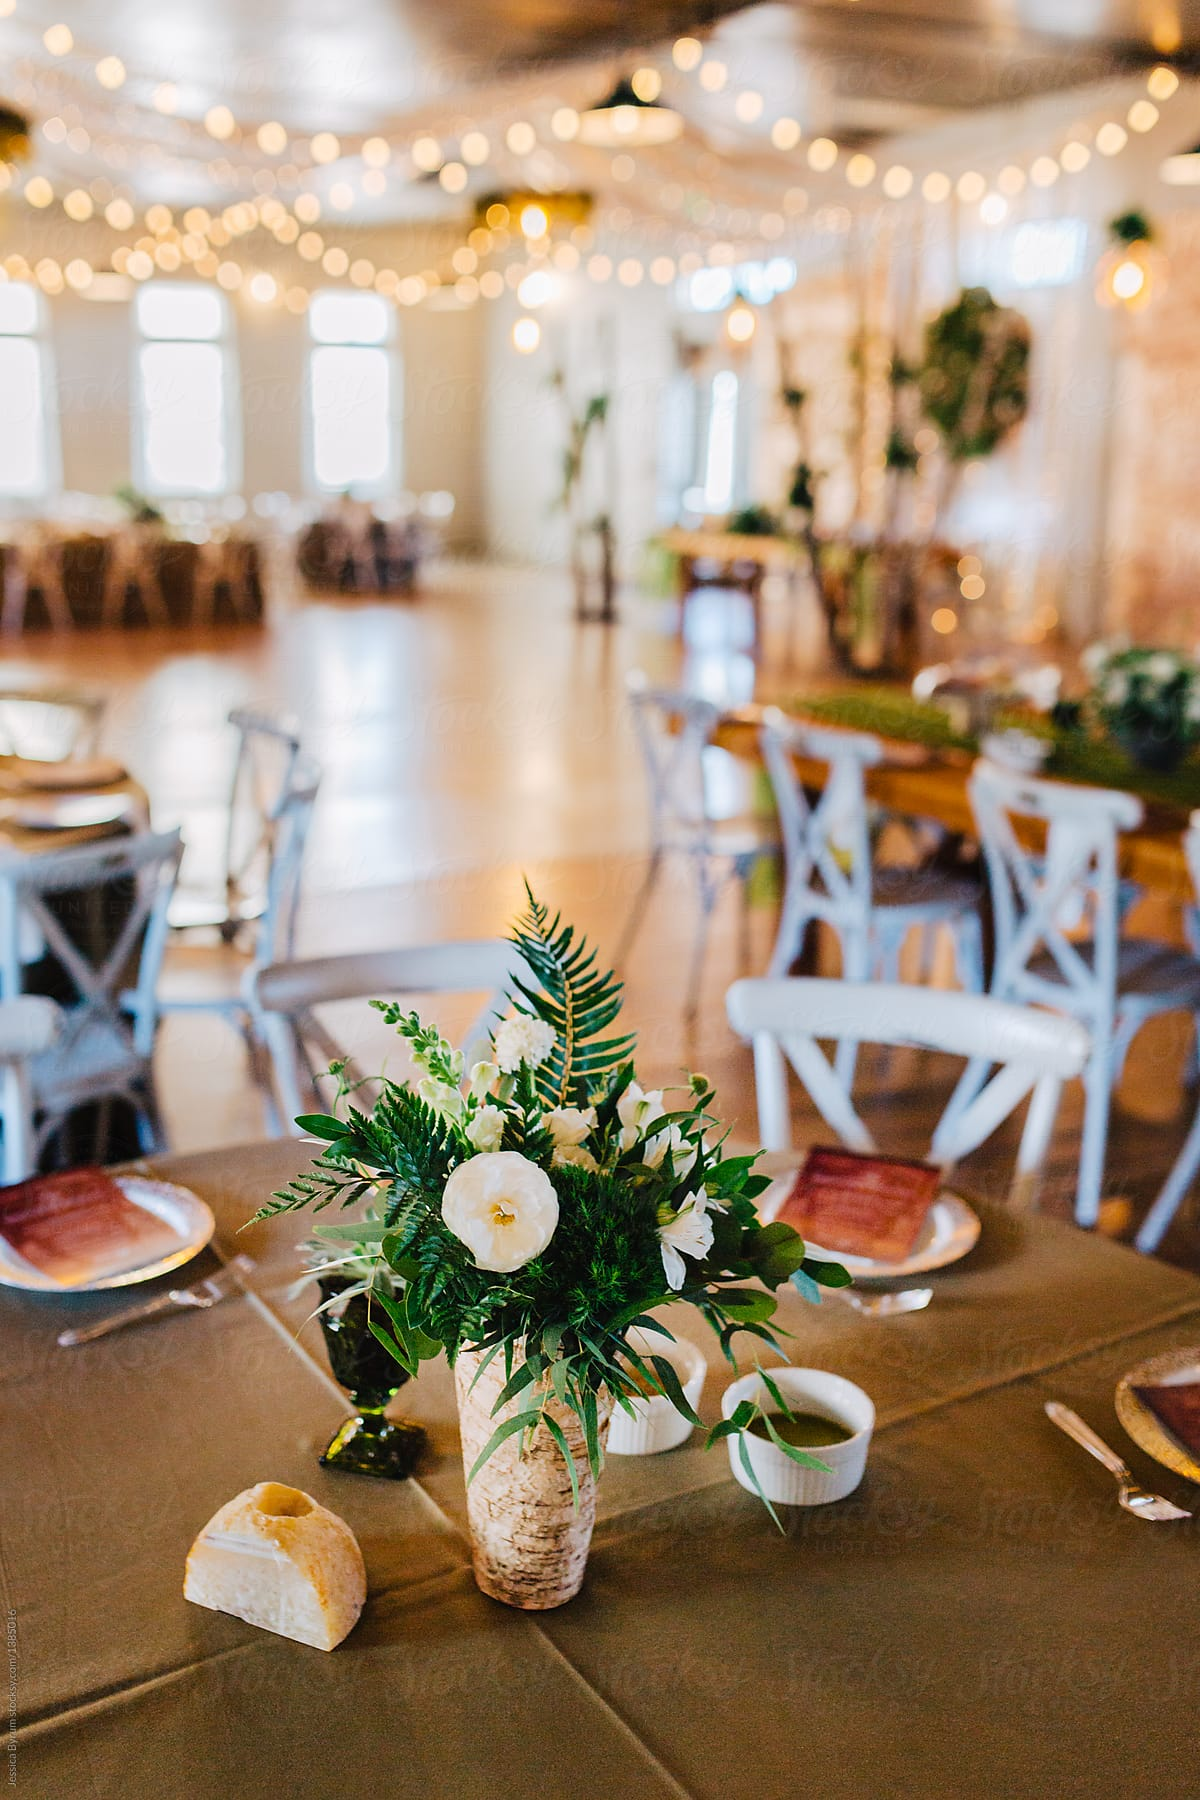 A venue set up for a wedding reception with copper and green colored decor.  by Jessica Byrum - Reception, Flower - Stocksy United